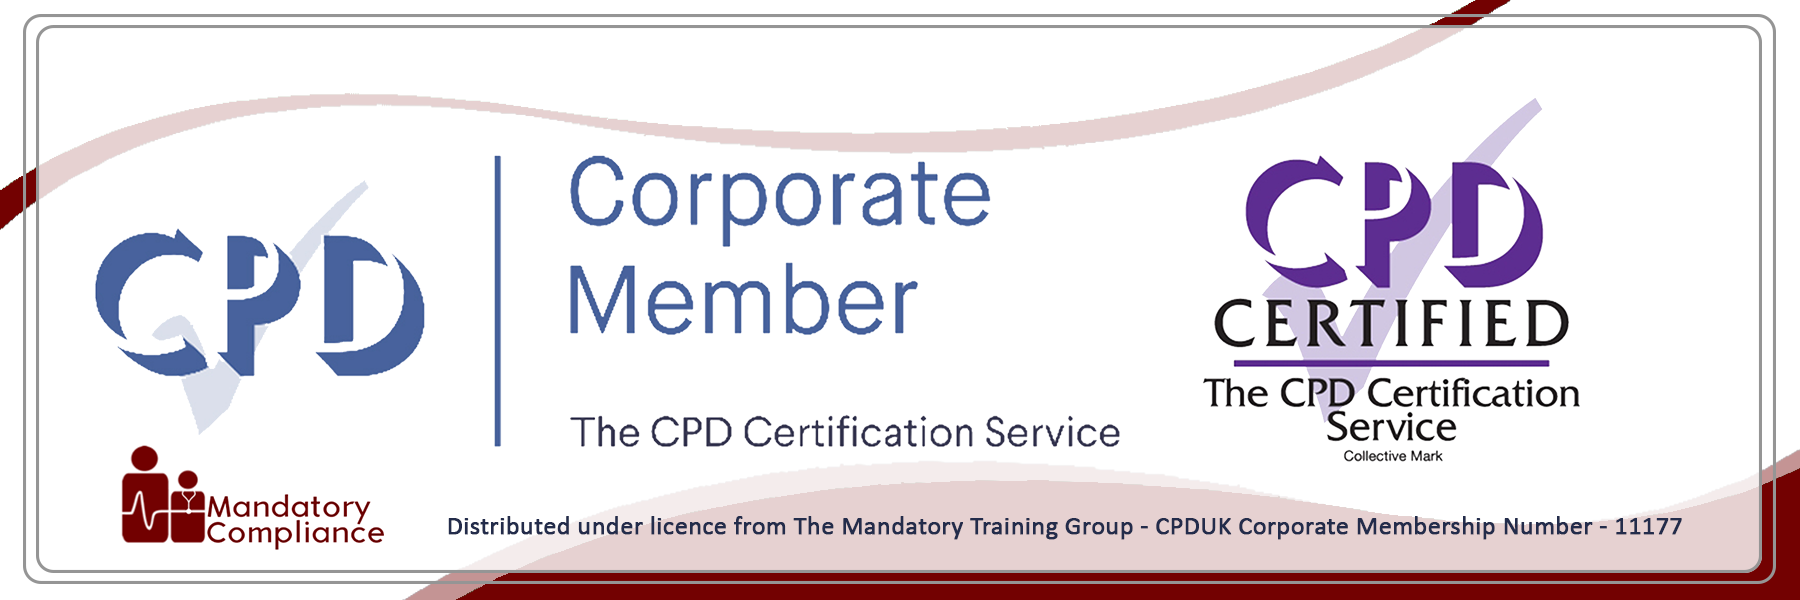 Mandatory Training for Dentists & Orthodontists - E-Learning Courses - Mandatory Compliance UK -